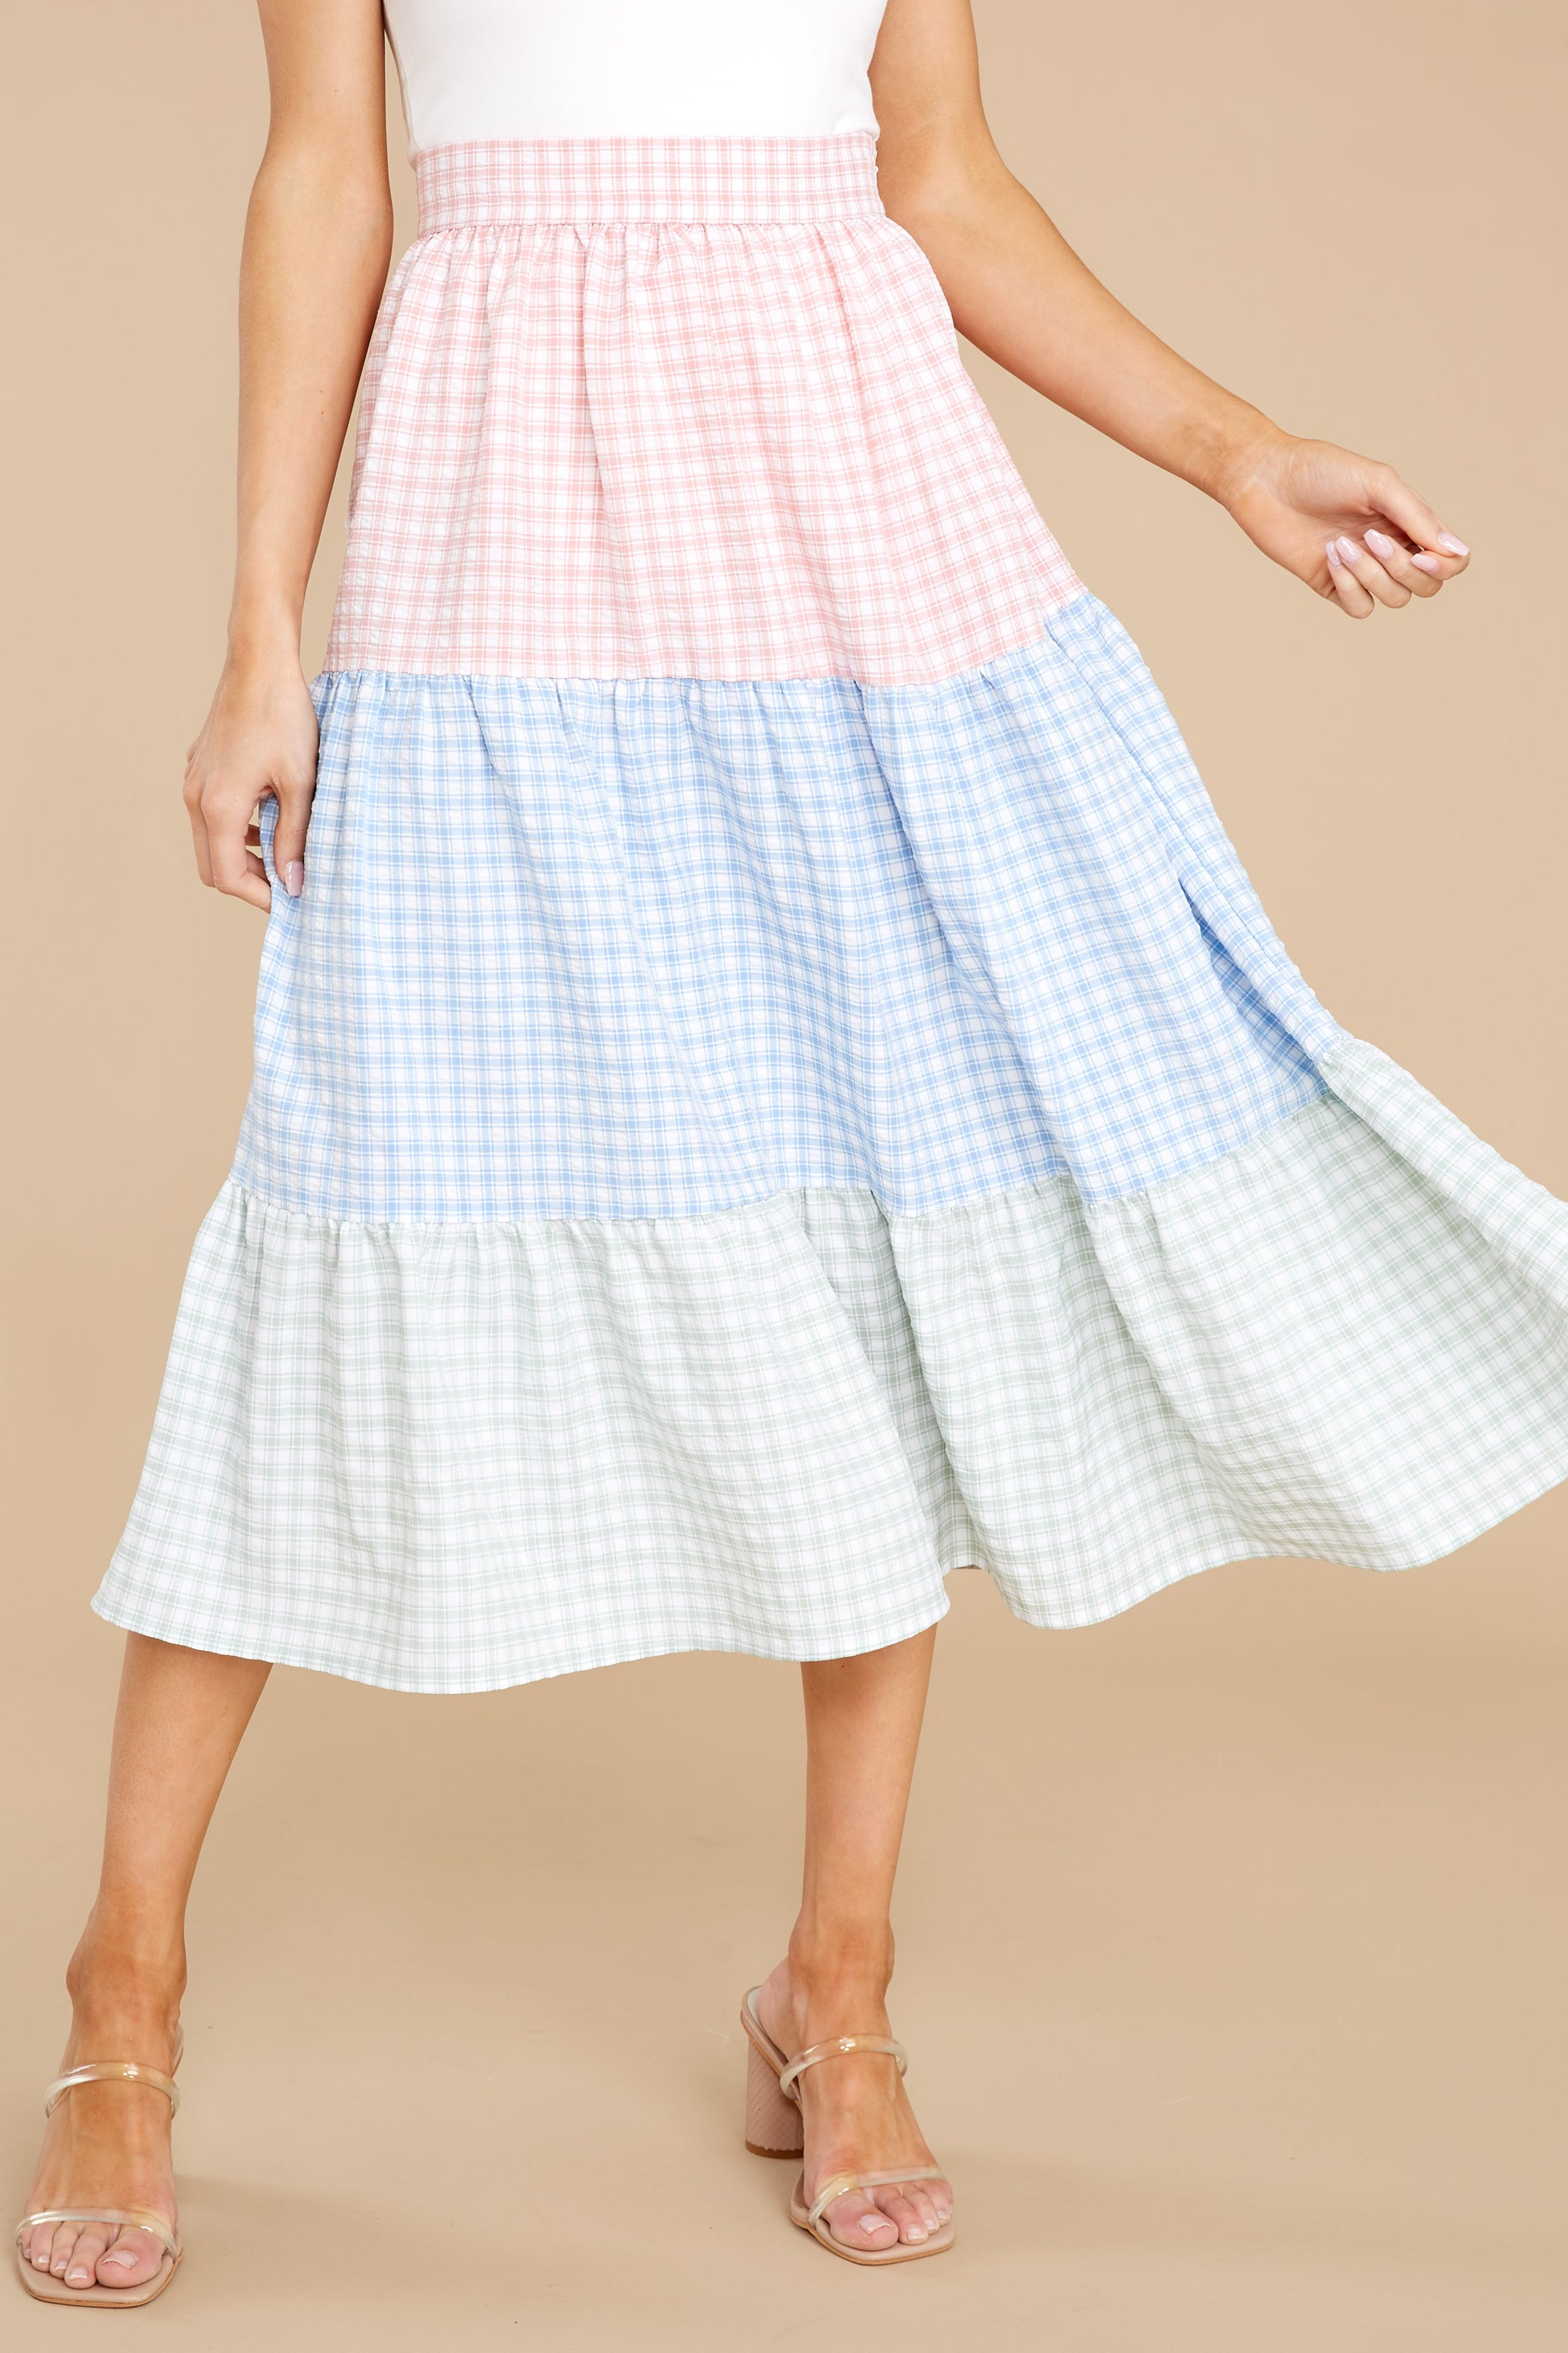 70s Clothes | Hippie Clothes & Outfits Collect Flowers Pink Multi Gingham Skirt $38.00 AT vintagedancer.com